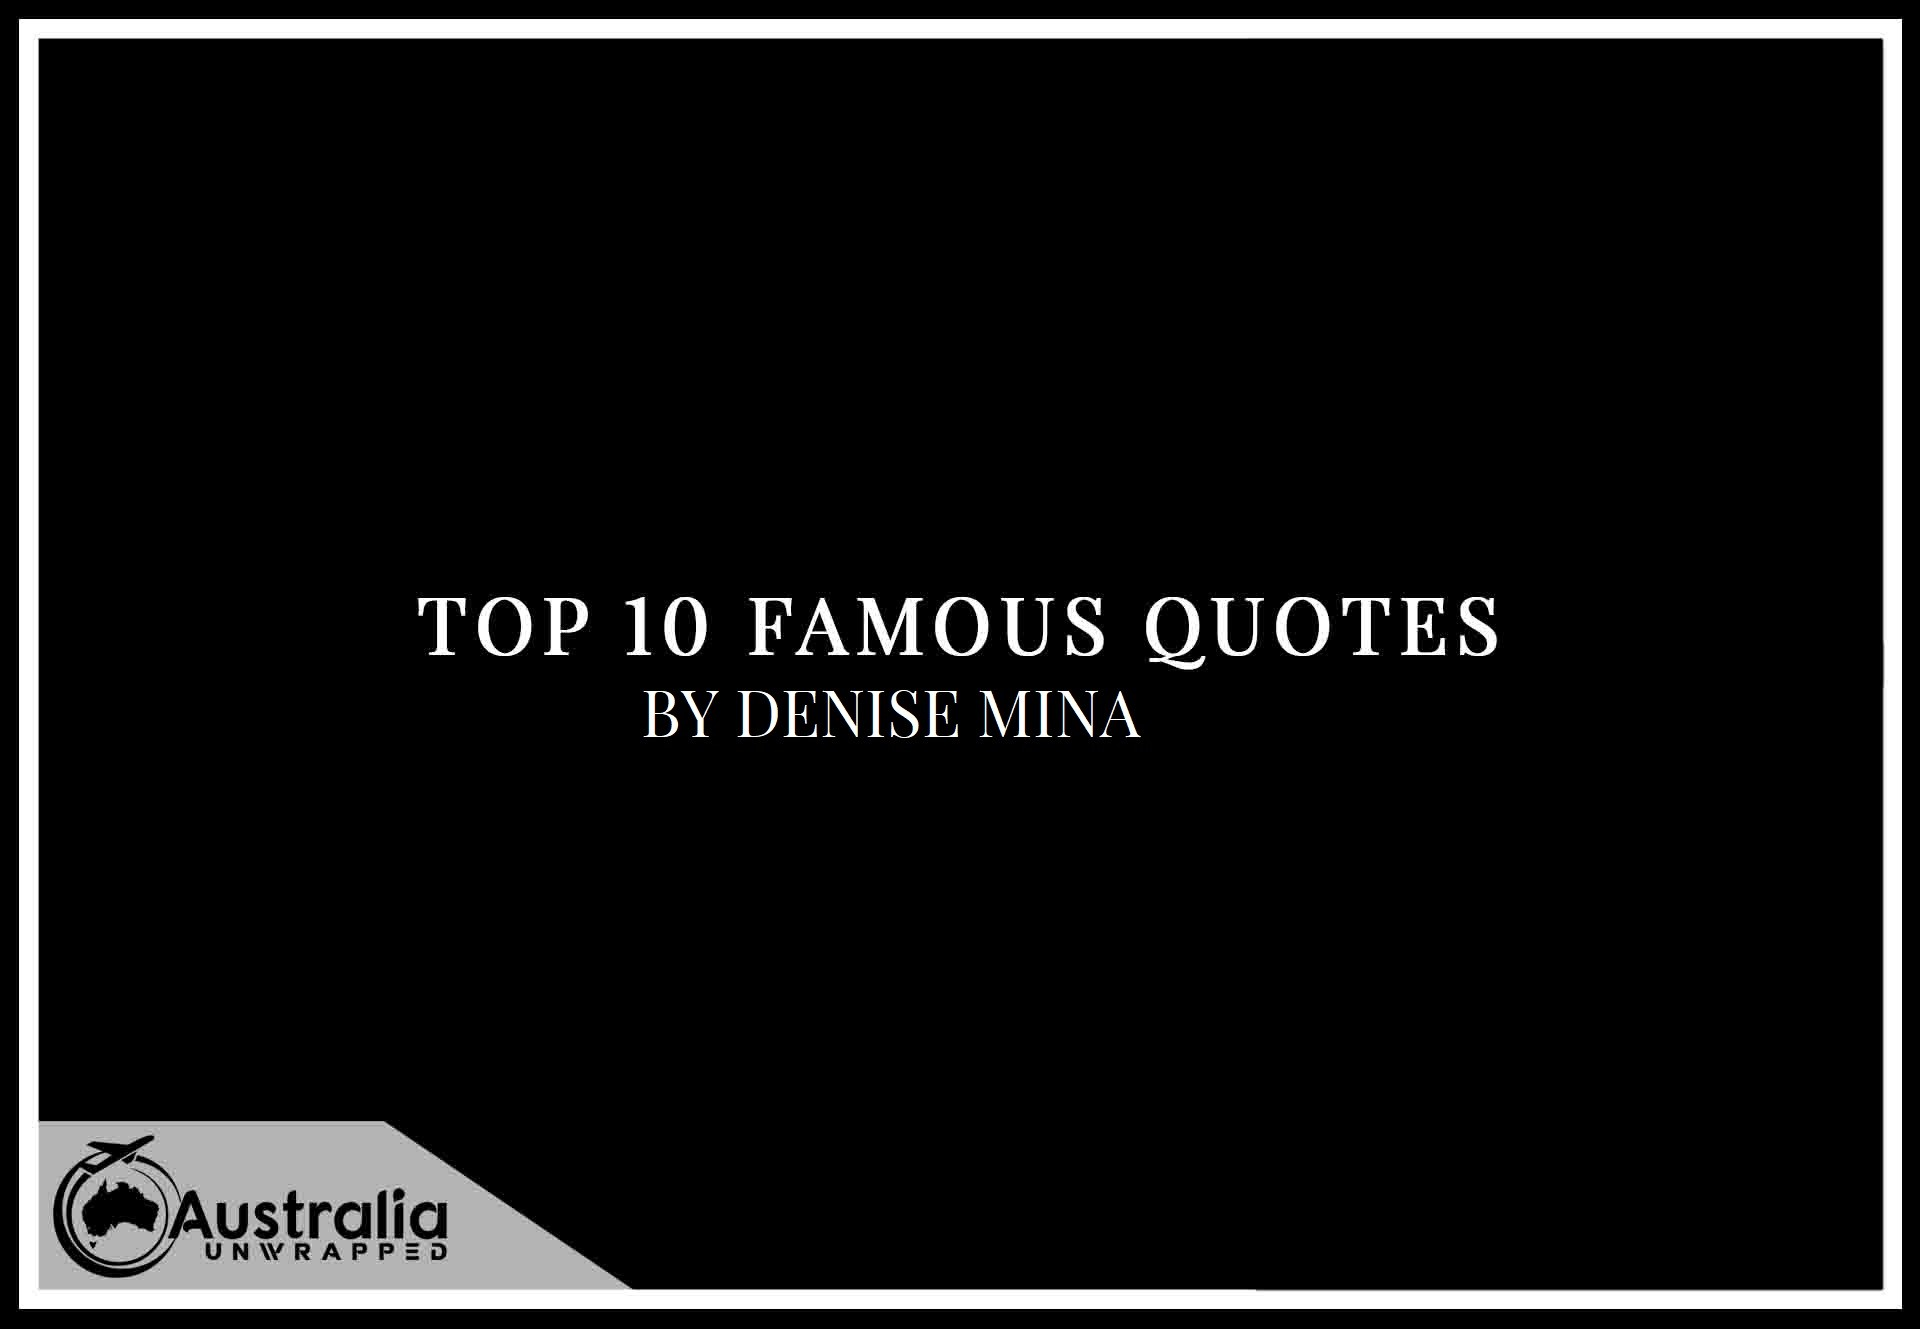 Top 10 Famous Quotes by Author Denise Mina